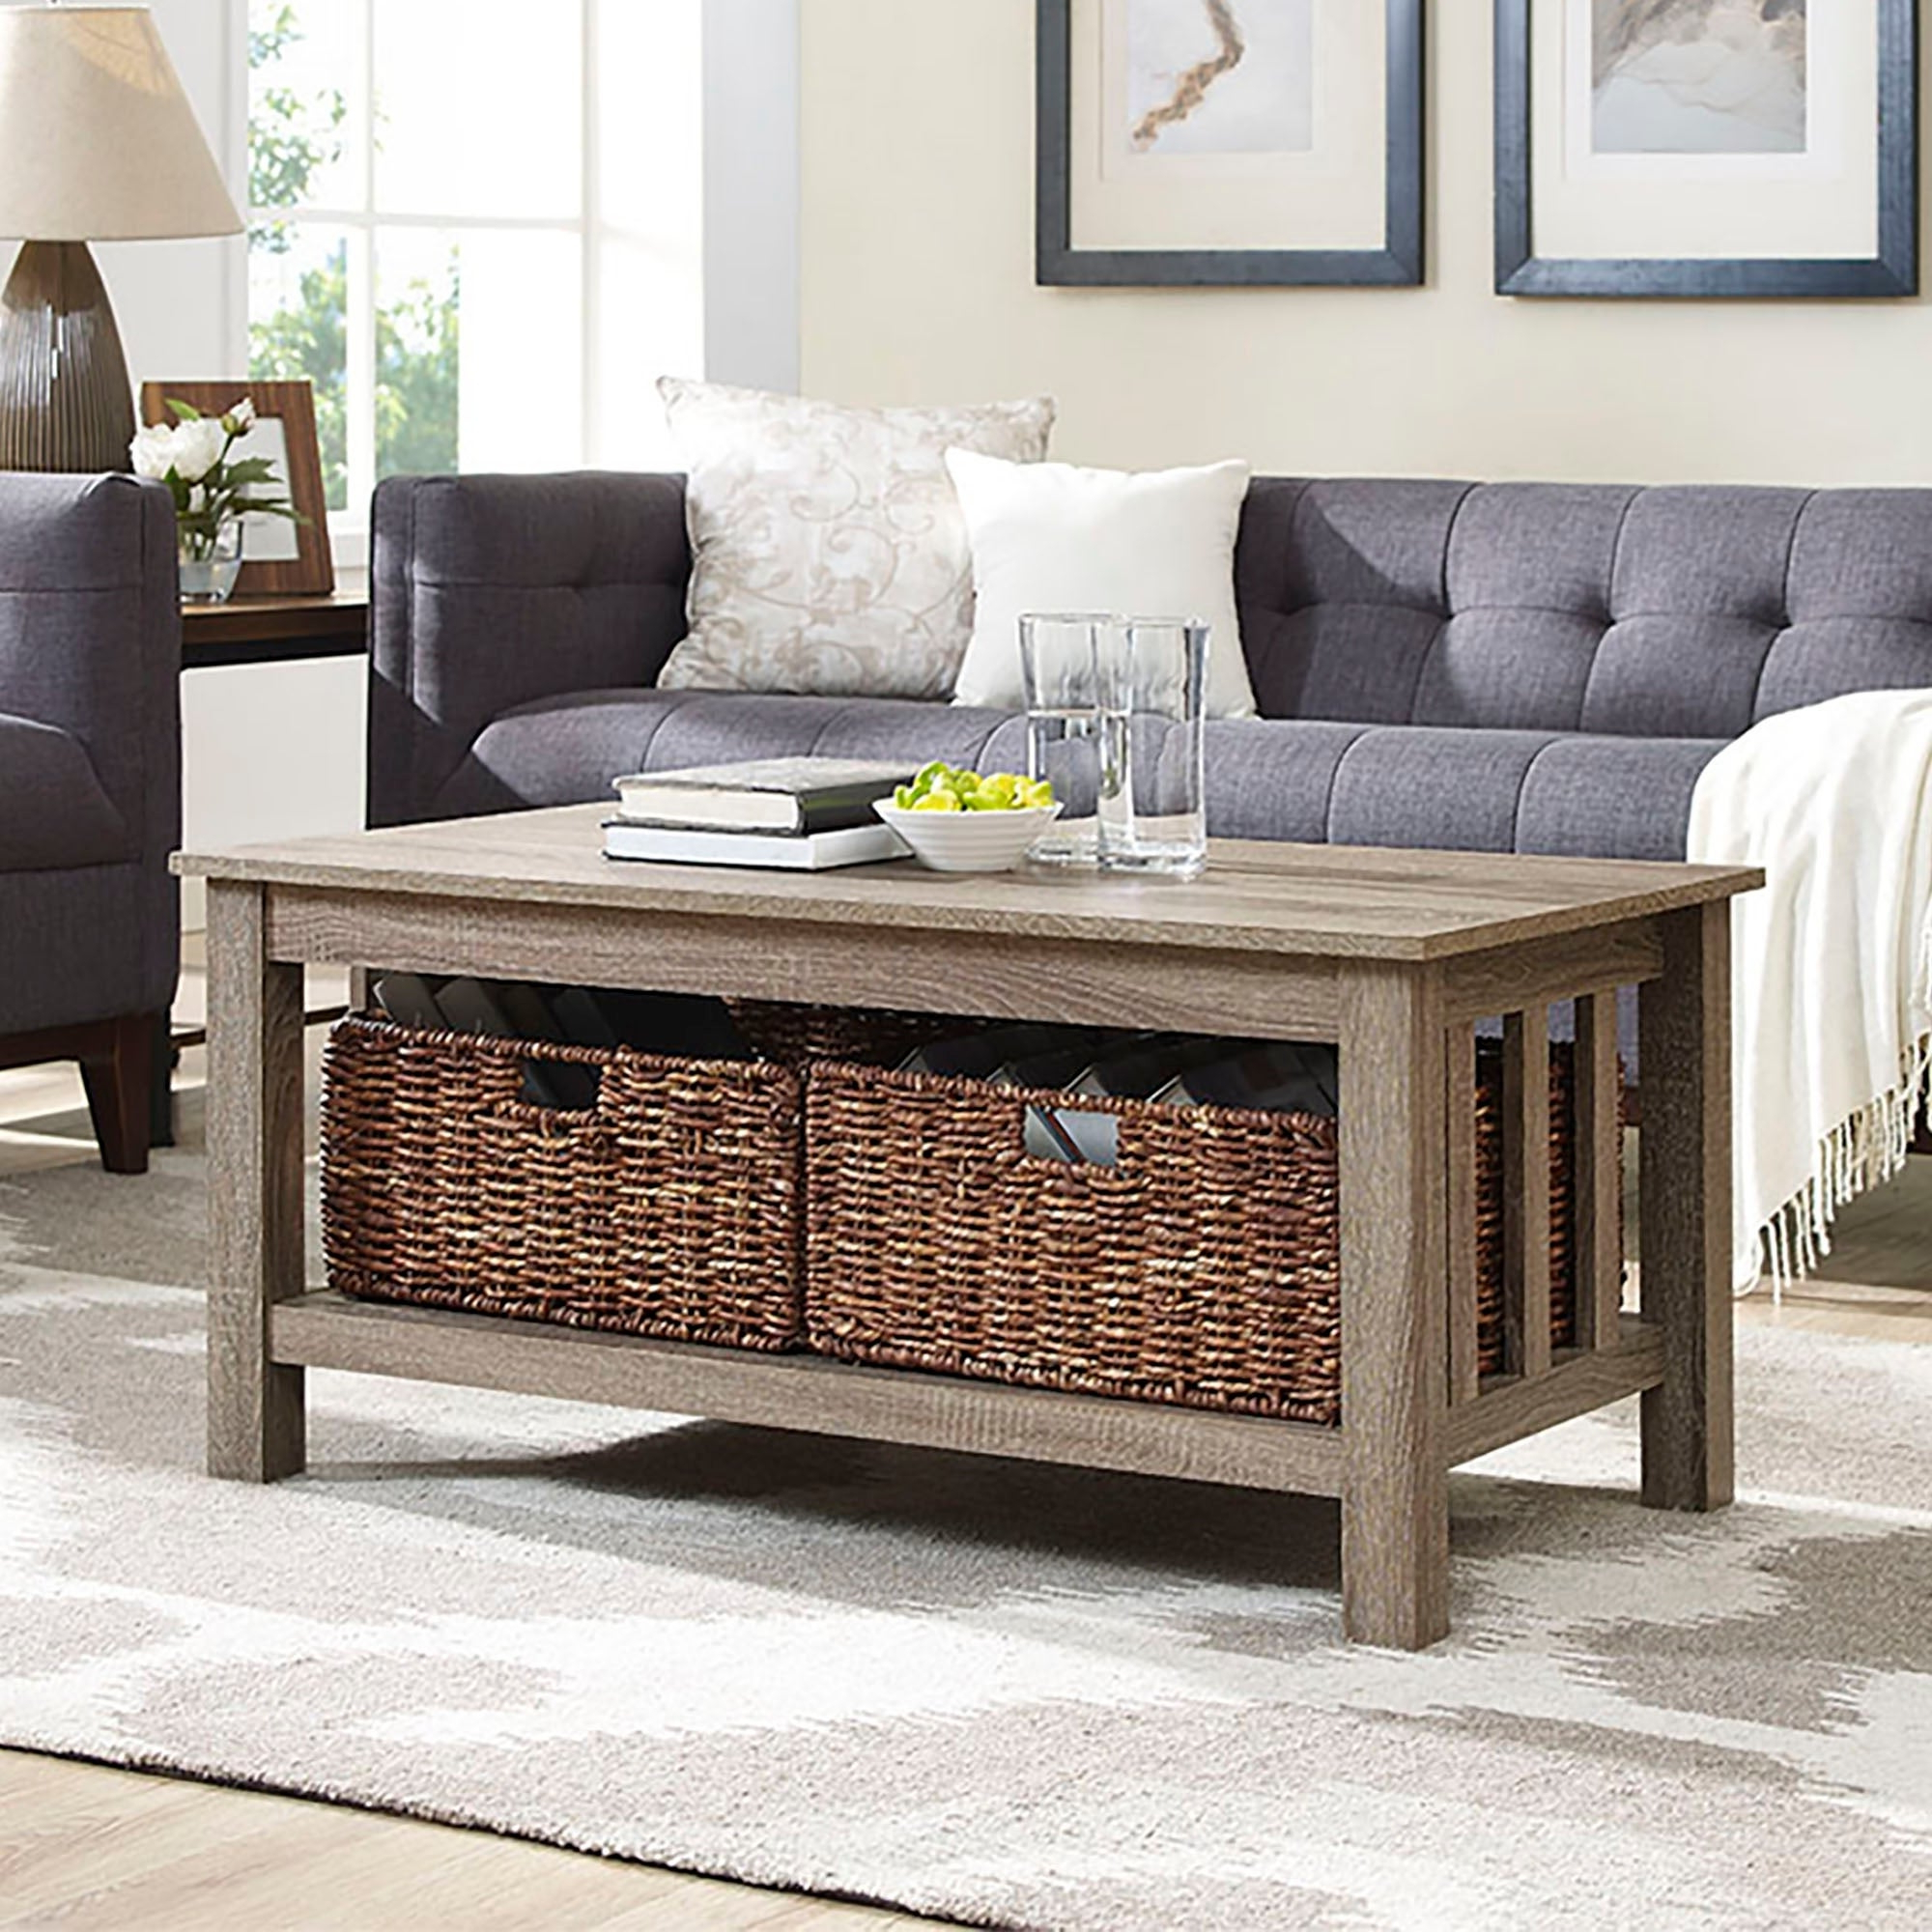 Middlebrook Designs 40 Inch Coffee Table With Wicker Storage Baskets, Driftwood, Rustic Living Room Table – 40 X 22 X 18h For Most Up To Date Rustic Coffee Tables With Wicker Storage Baskets (View 3 of 20)